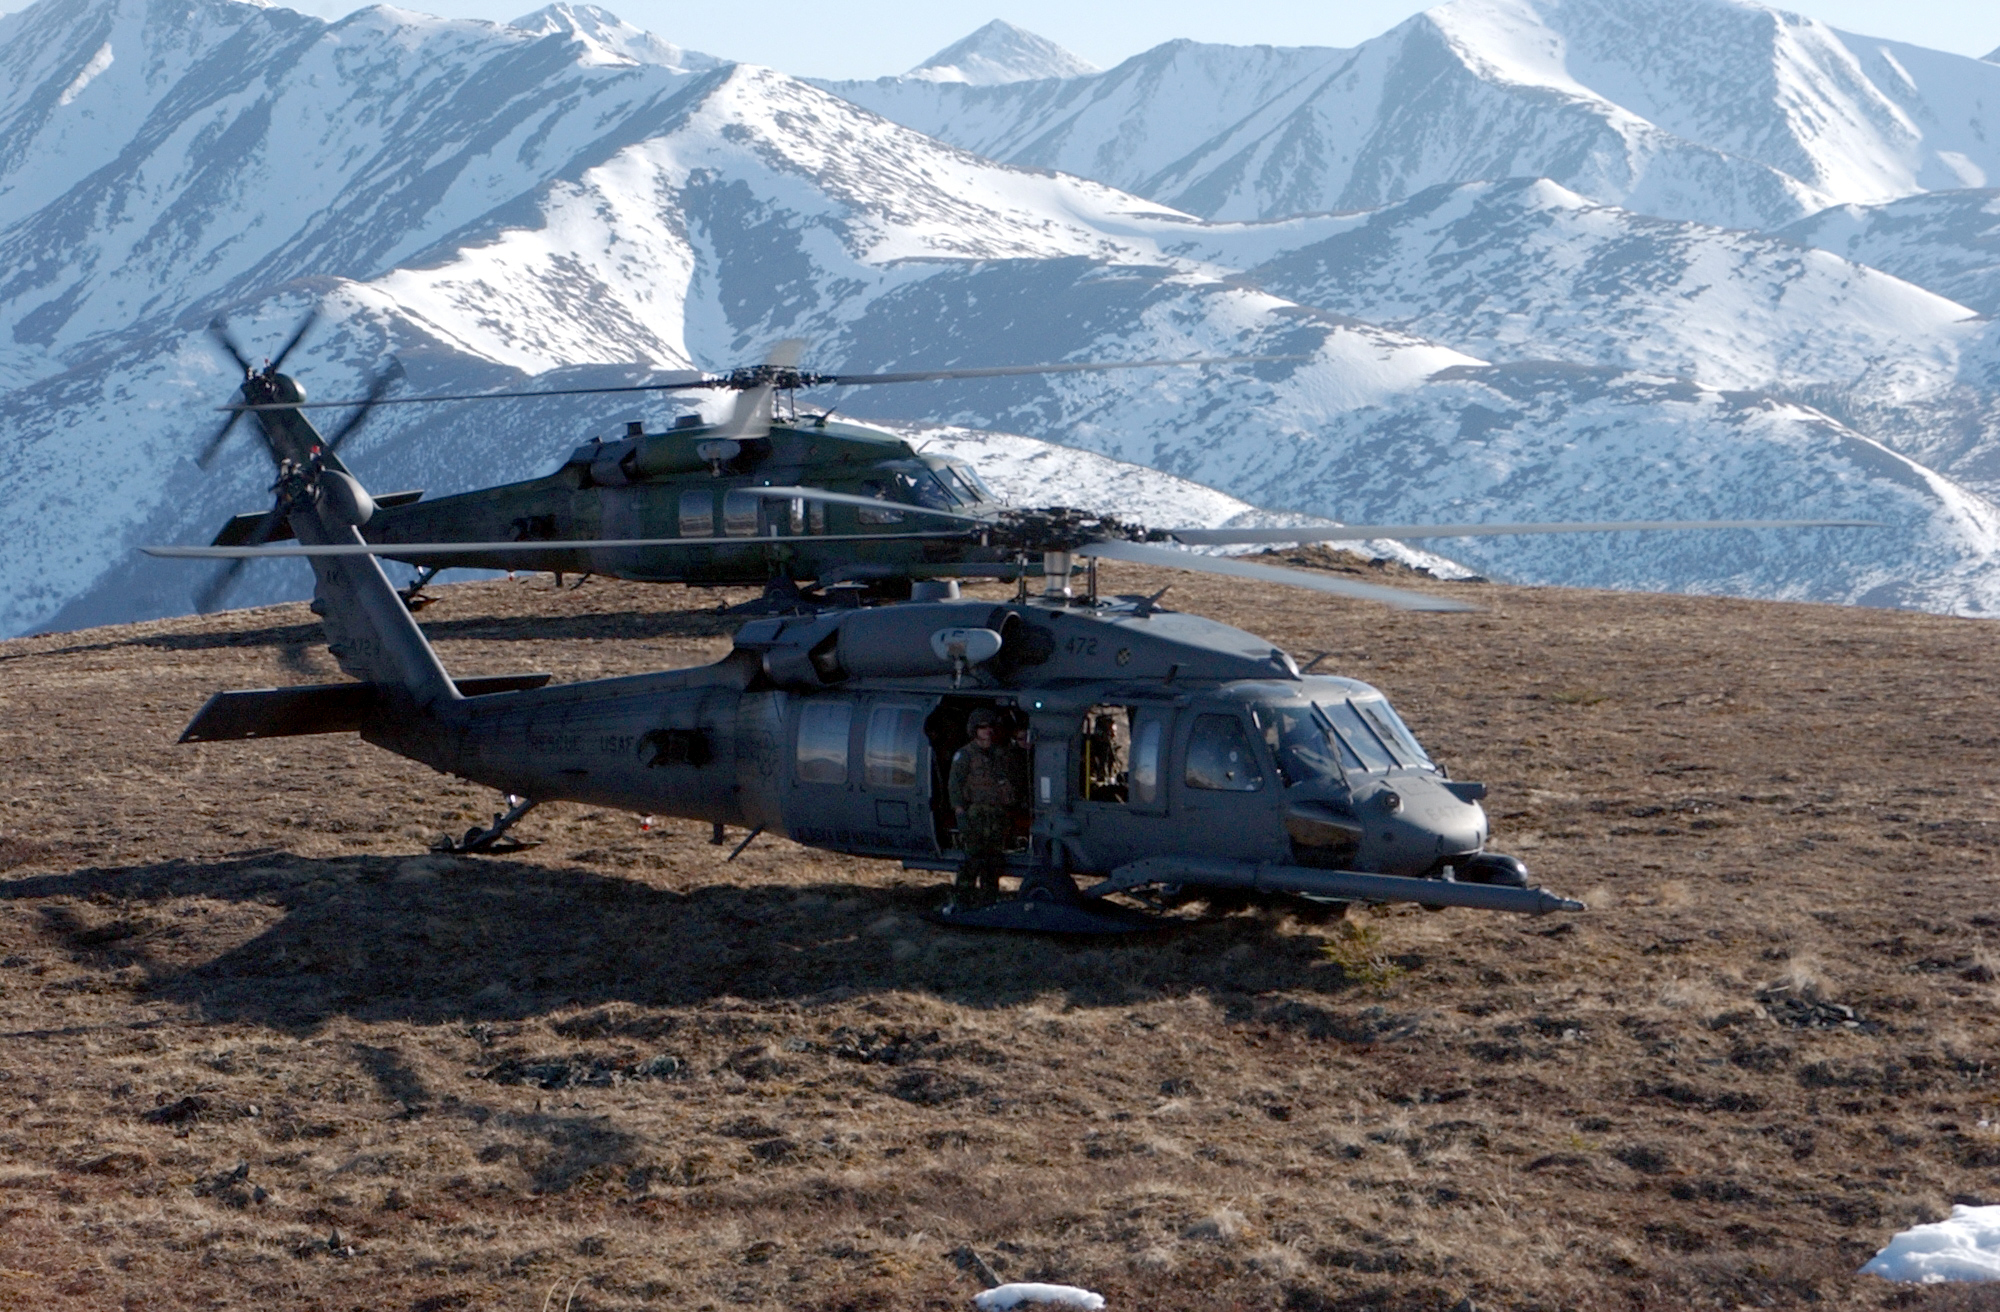 HH-60_Pavehawk_helicopters_on_a_mountain_in_Alaska.jpg